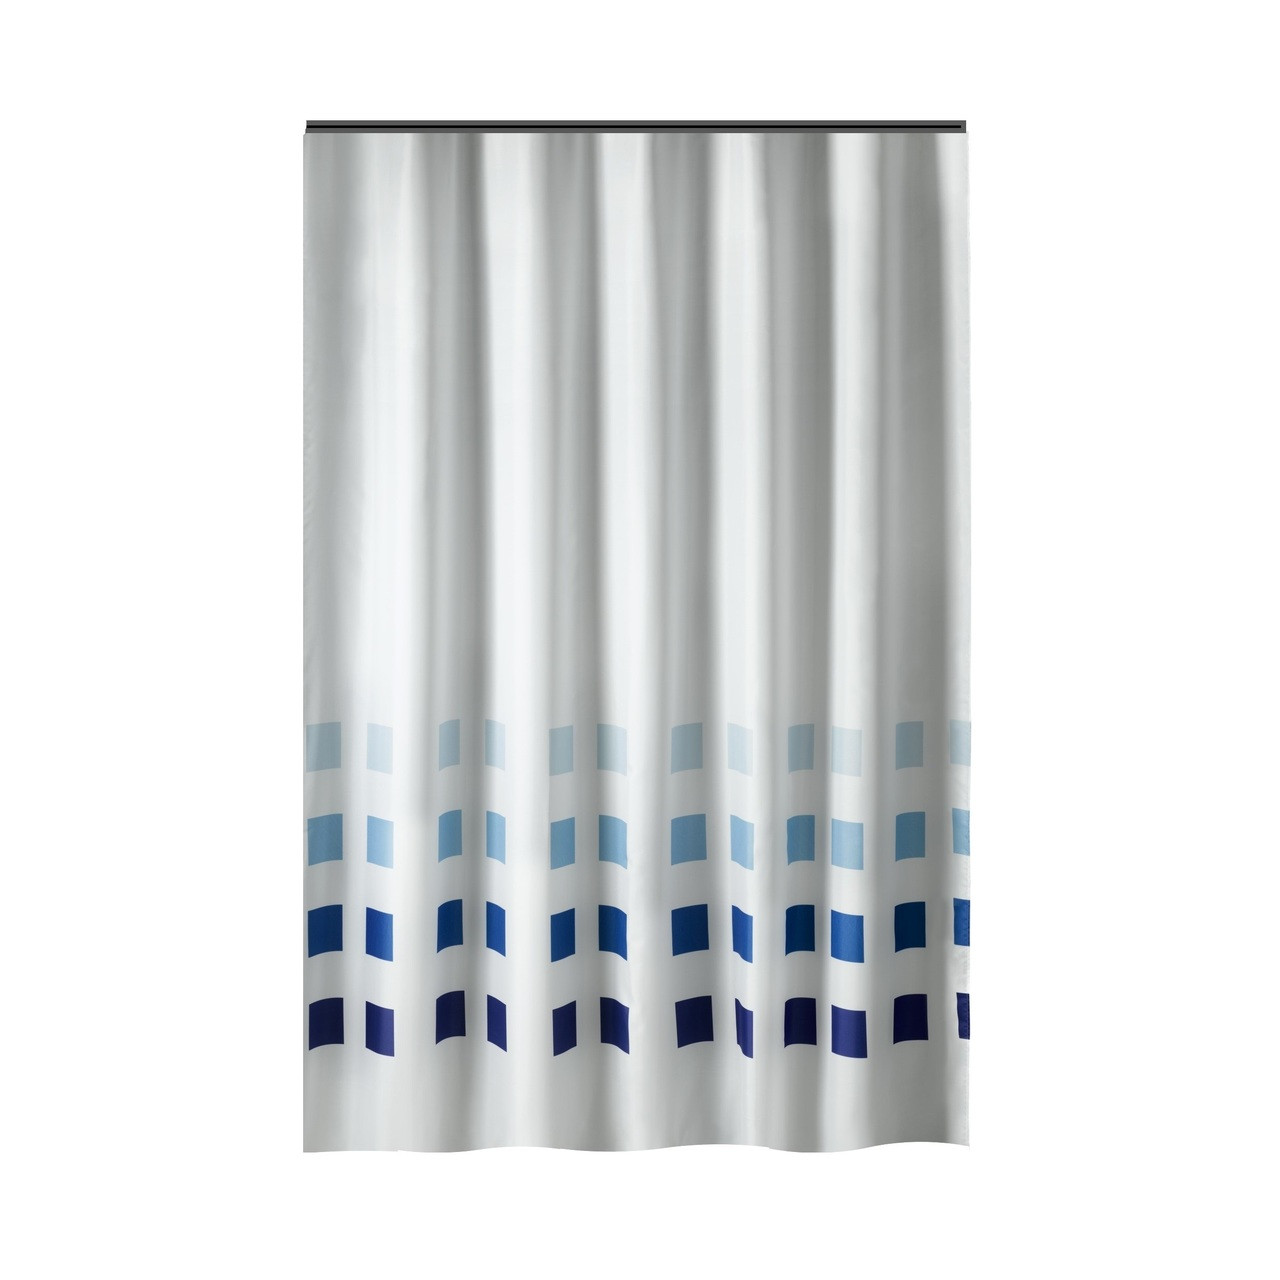 Long Shower Curtain Extra Long Shower Curtain 72 X 78 Inch Gamma White With Blue Squares Fabric